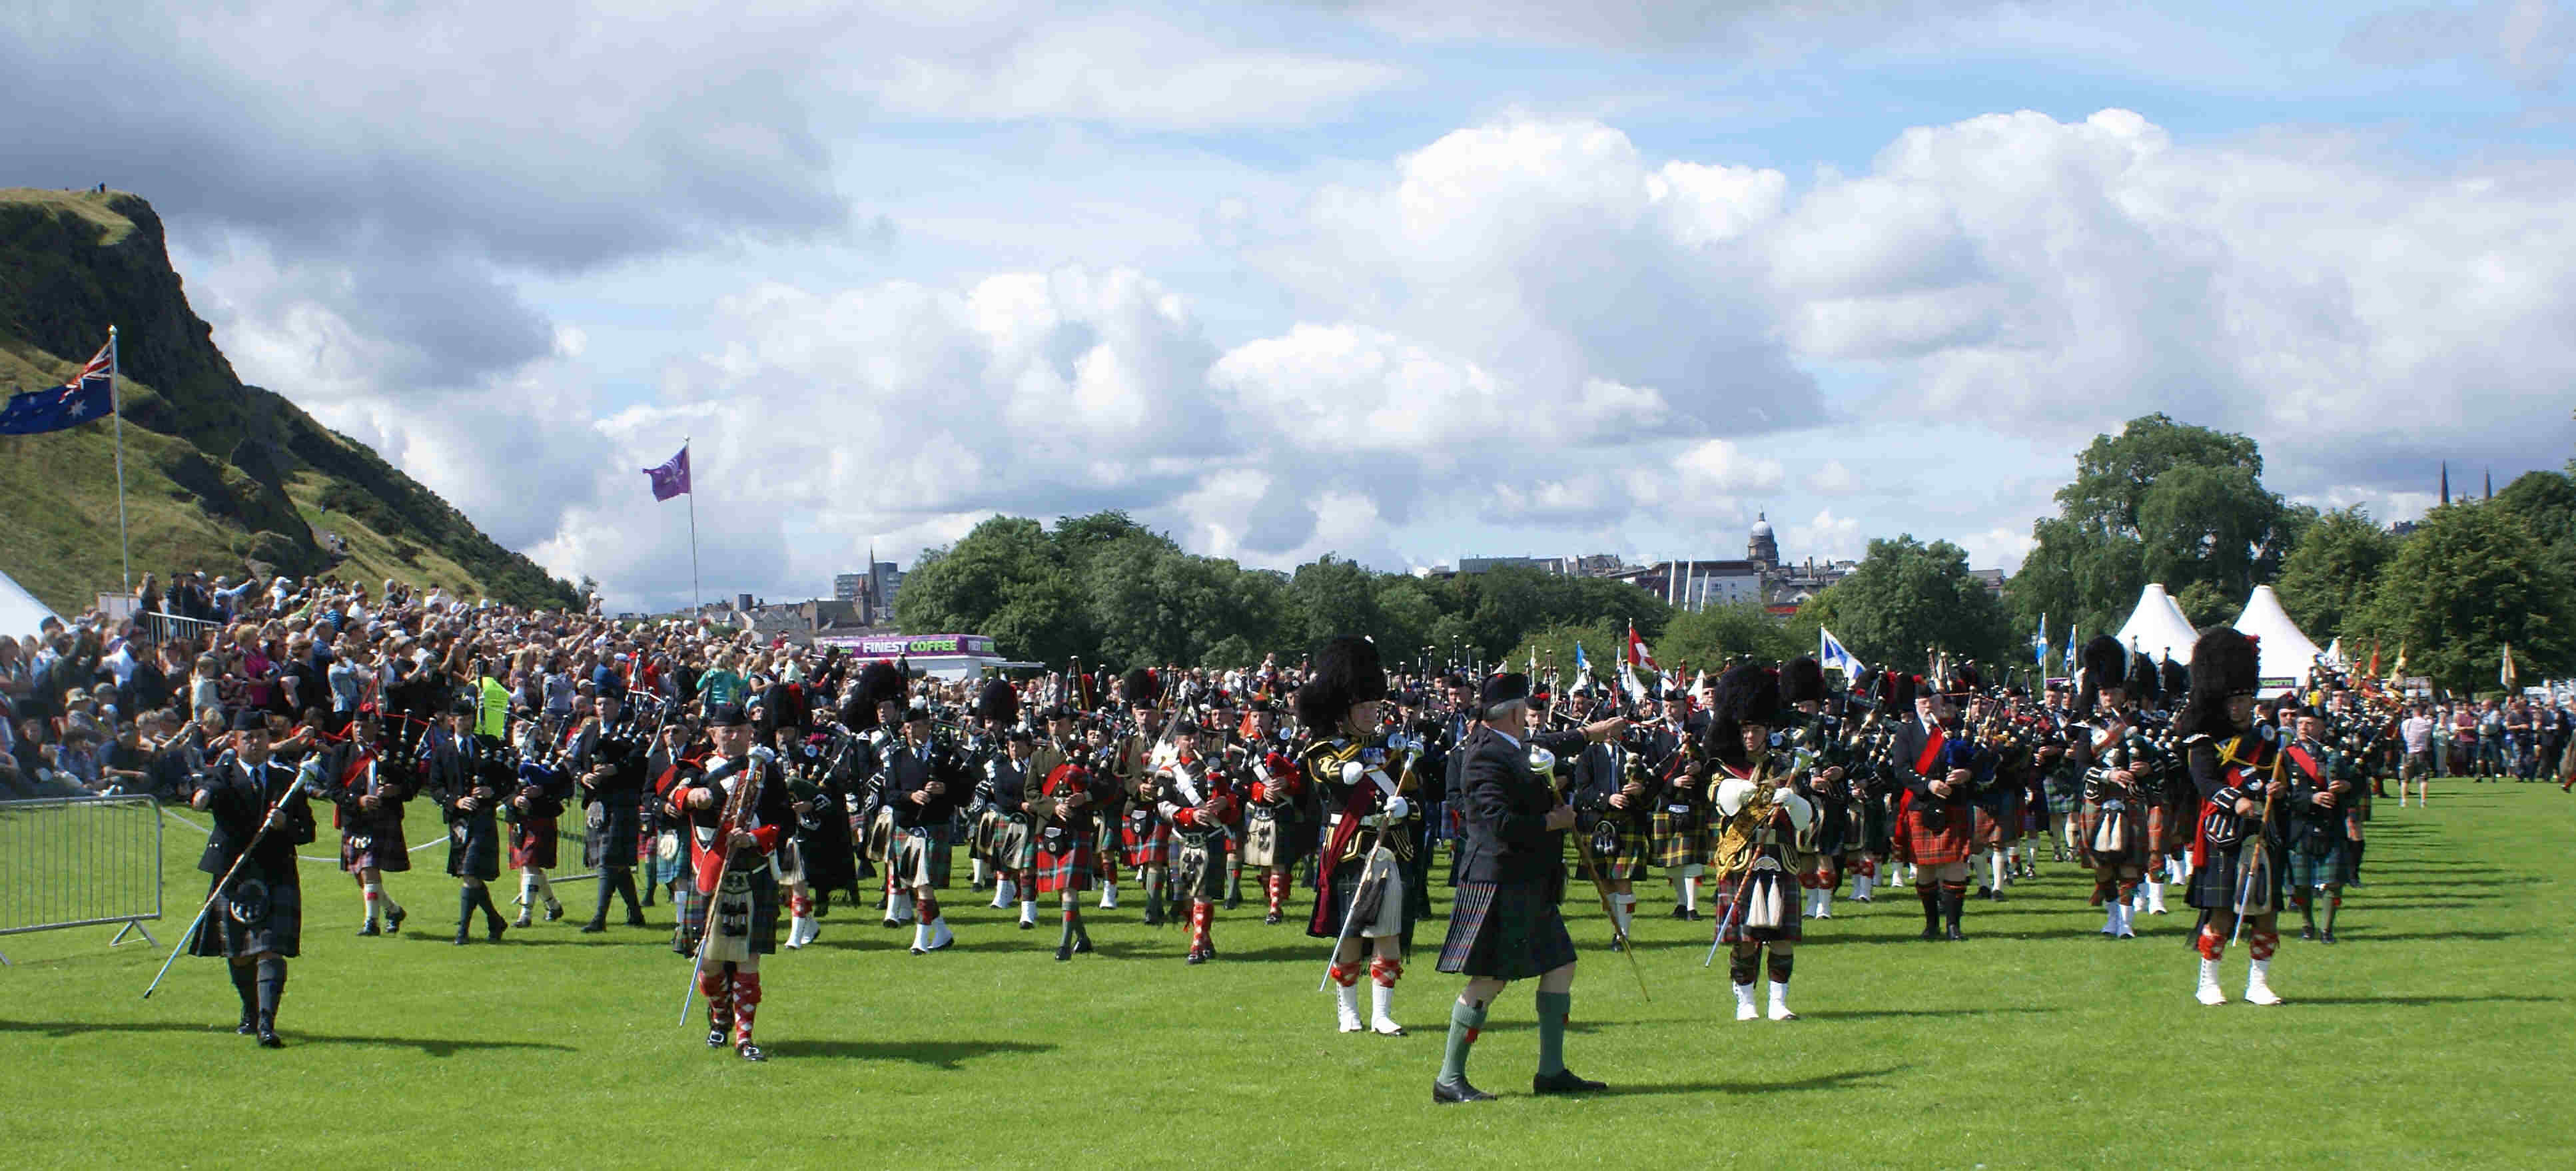 Photograph of Opening parade The Gathering 2009